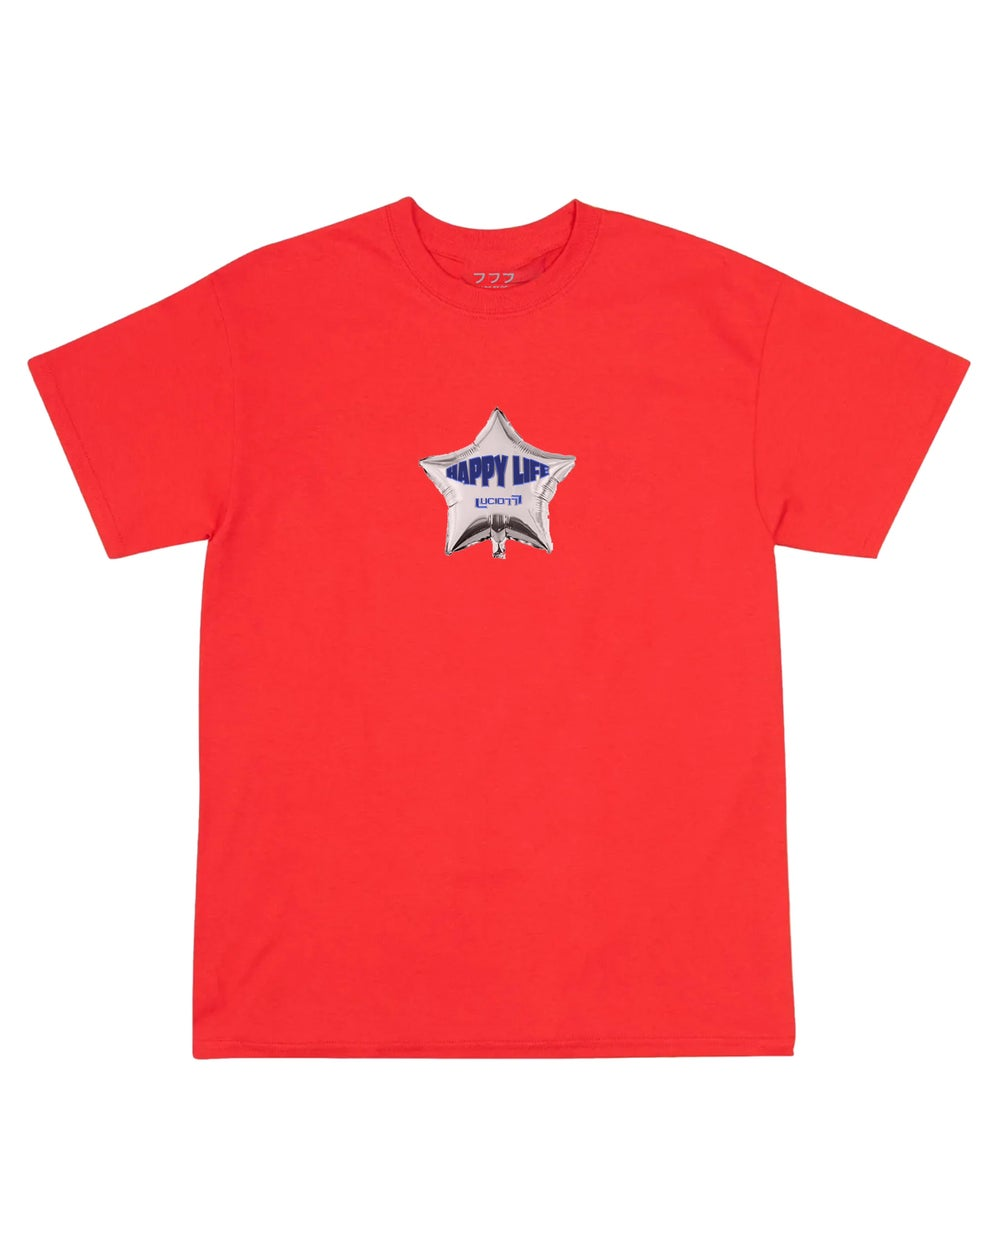 Image of HAPPY LIFE TEE (RED)